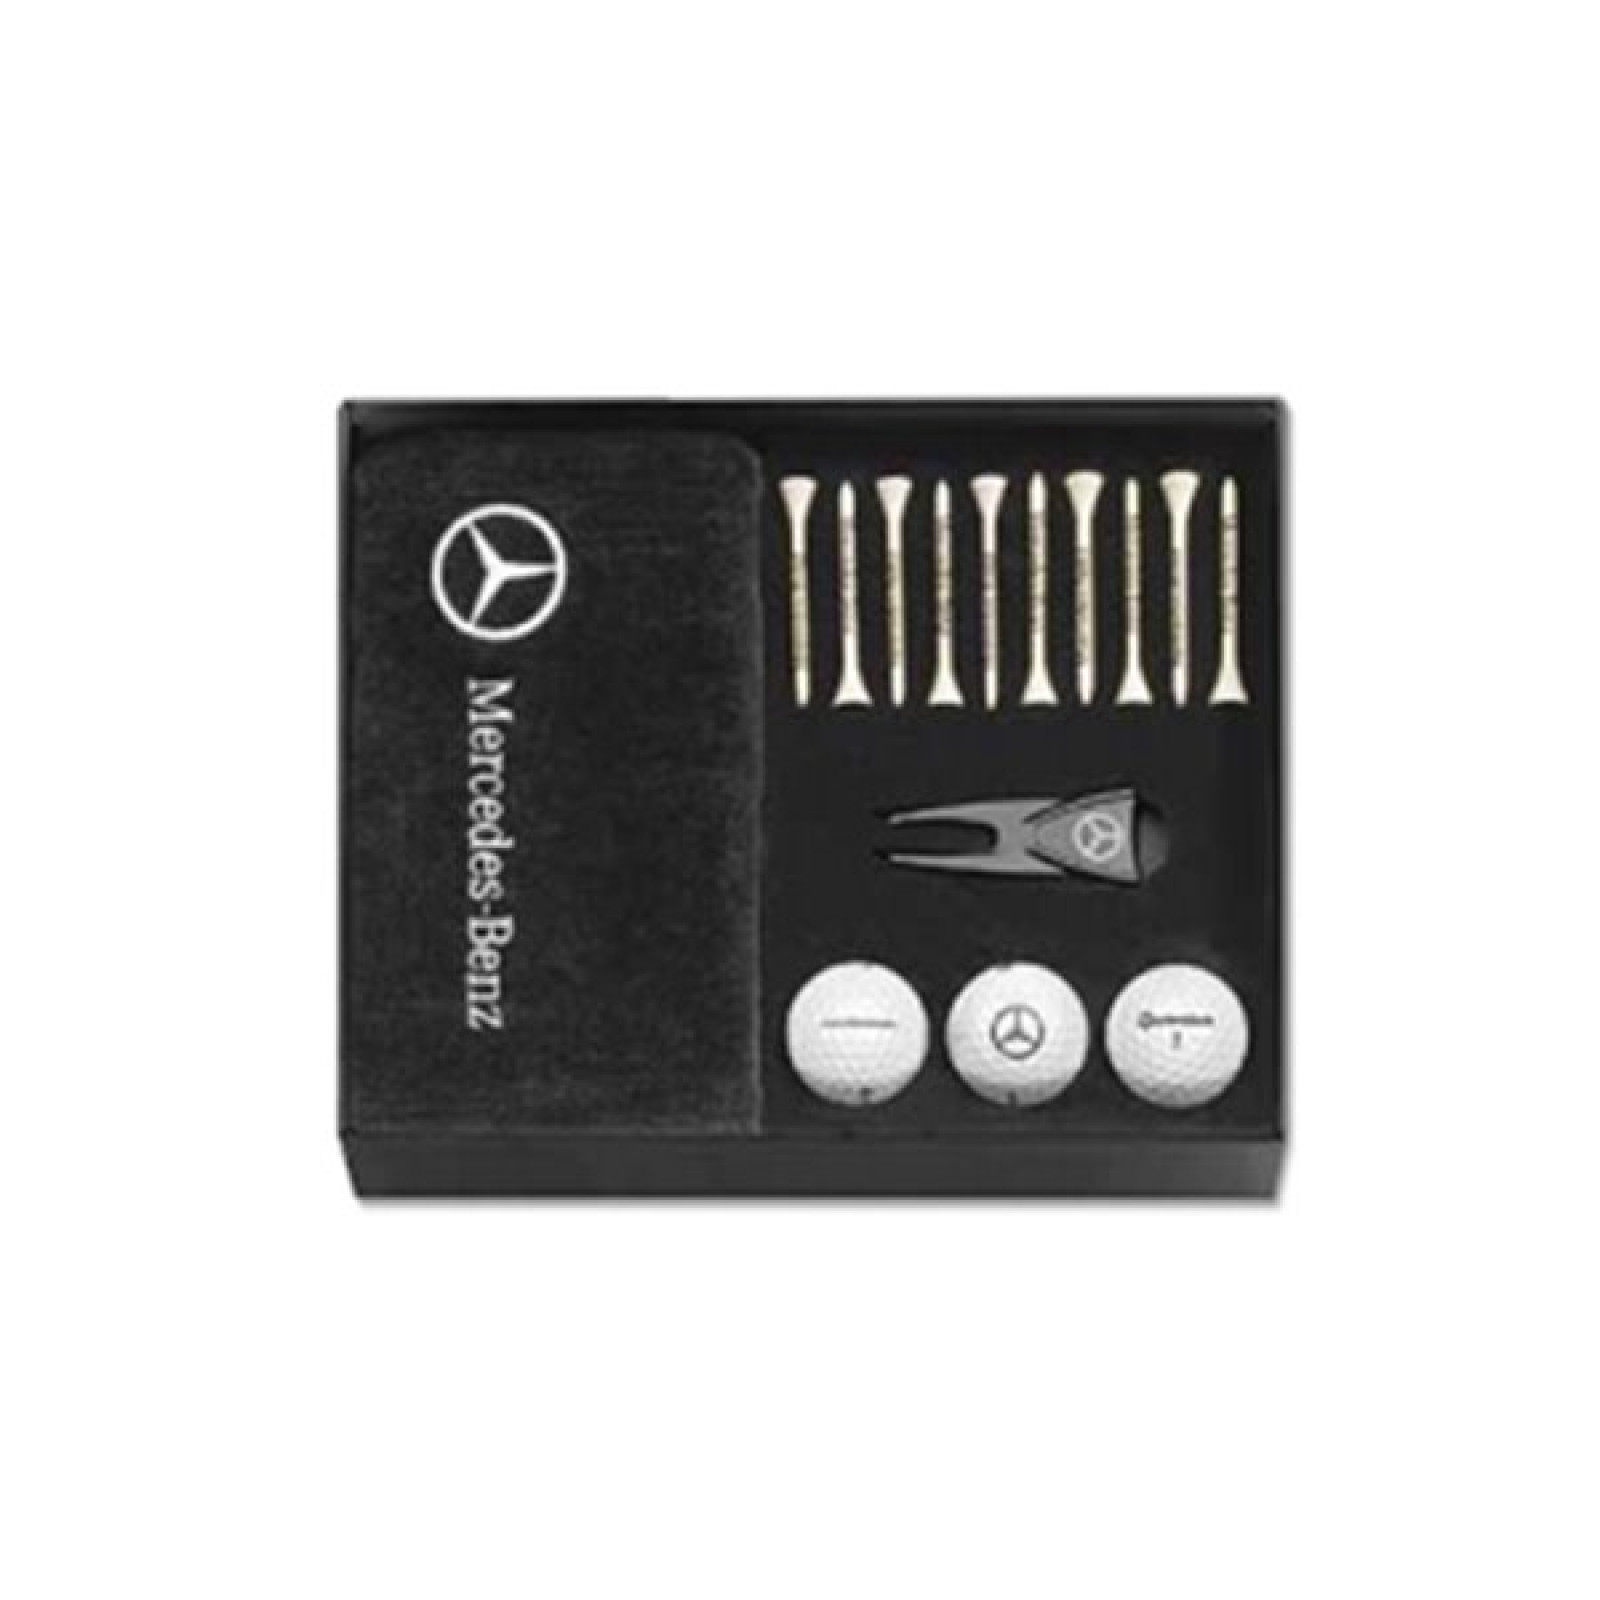 Mercedes benz official taylormade golf gift set the sl shop for Mercedes benz gifts